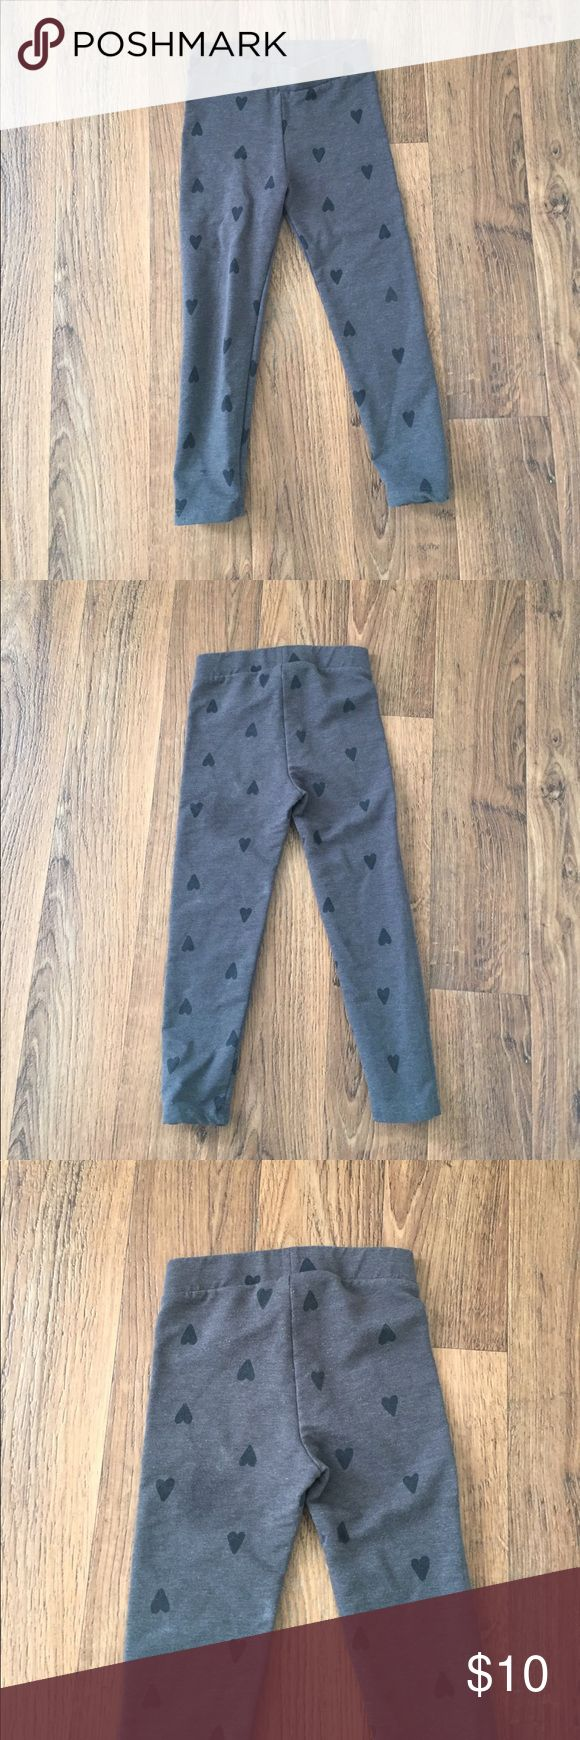 EUC • H&M • Grey Leggings With Black Hearts • 3-4Y Great condition • Kids h&M Leggings • bundle discount offered H&M Bottoms Leggings